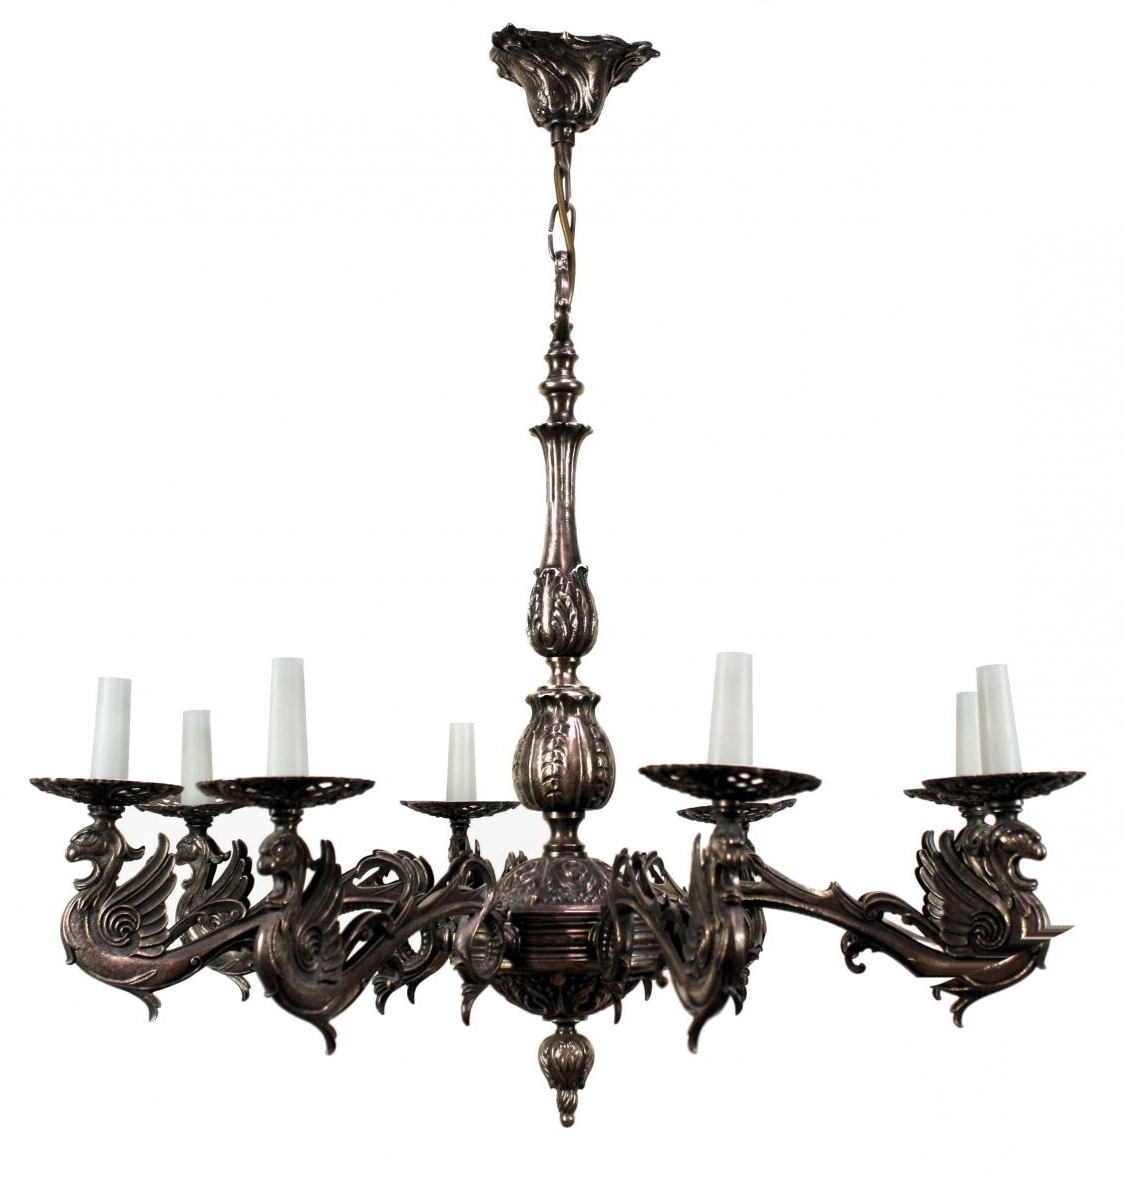 Favorite French Silvered Bronze Gothic Style Chandelier, 1900s For Sale At Pamono In French Style Chandelier (View 2 of 20)